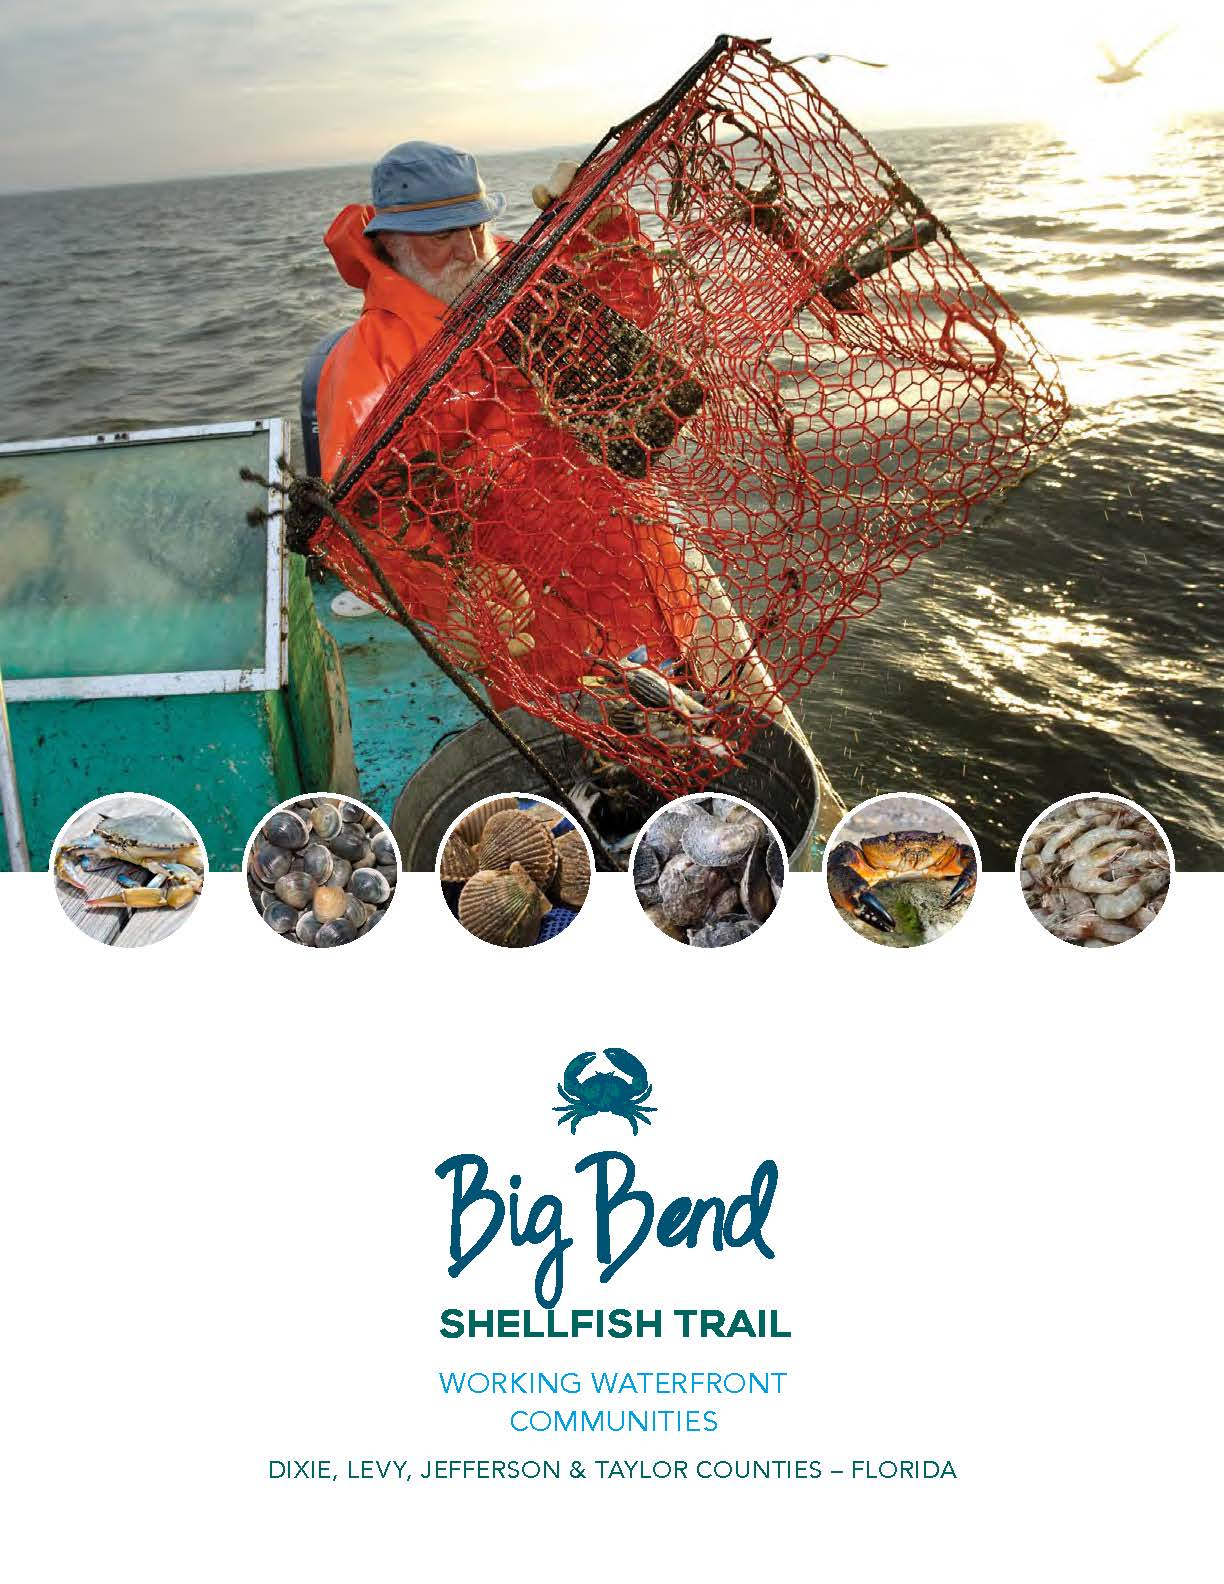 Big Bend Shellfish Trail--Florida's Working Waterfront Communities